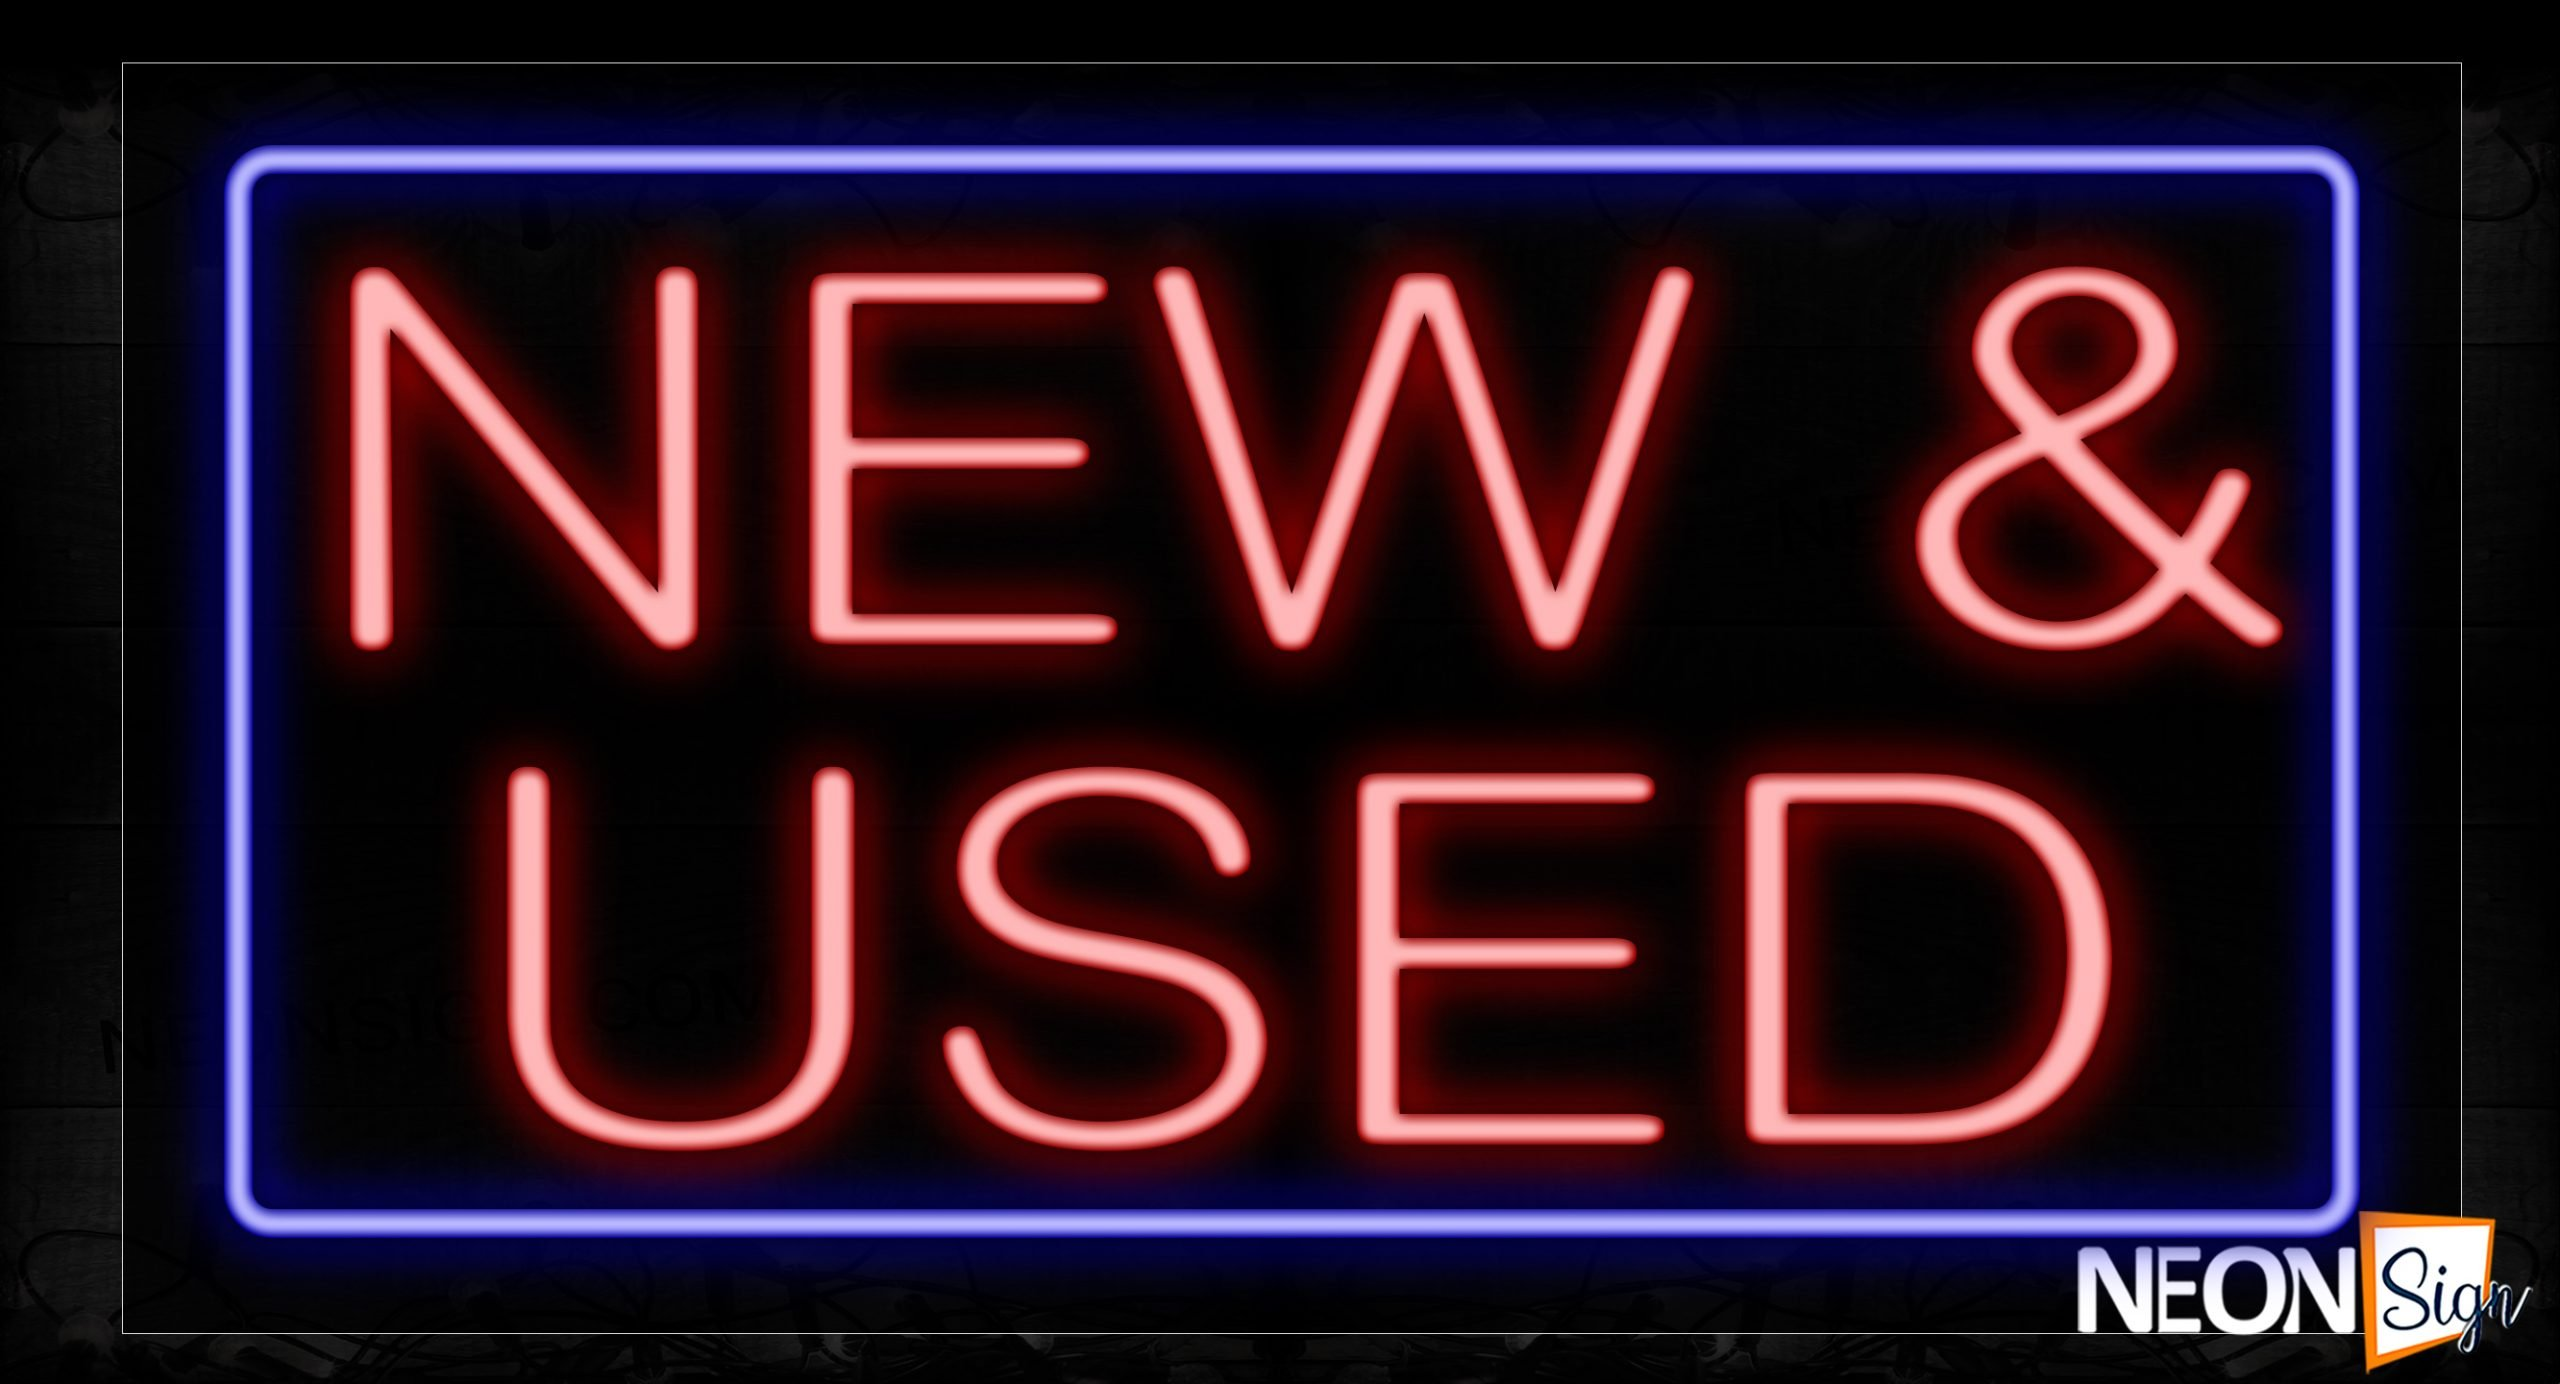 Image of 11754 New & Used In Red With Blue Border Neon Signs_20x37 Black Backing